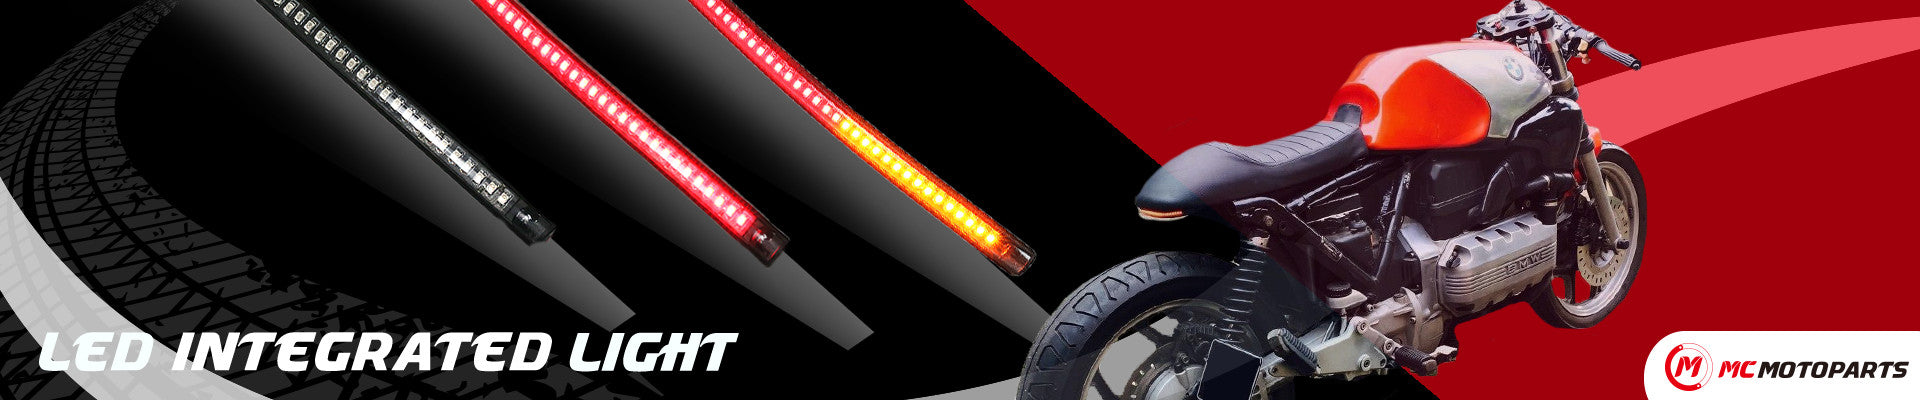 MC Motoparts Front Running & Tail Brake 2-in-1 Turn Signal Light Strips